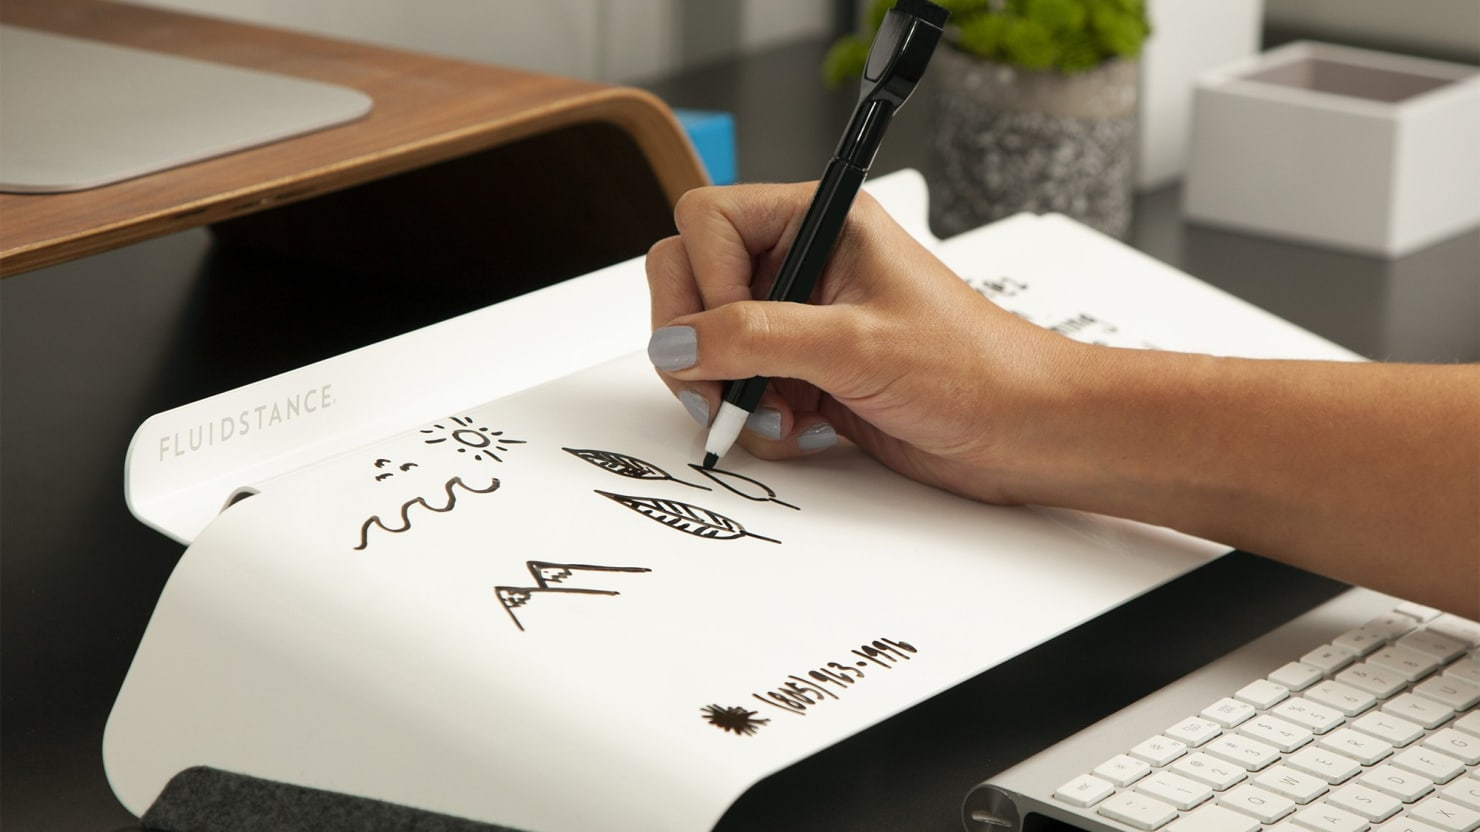 This Elegantly-Designed Desktop Whiteboard Will Solve All Your Desk Problems